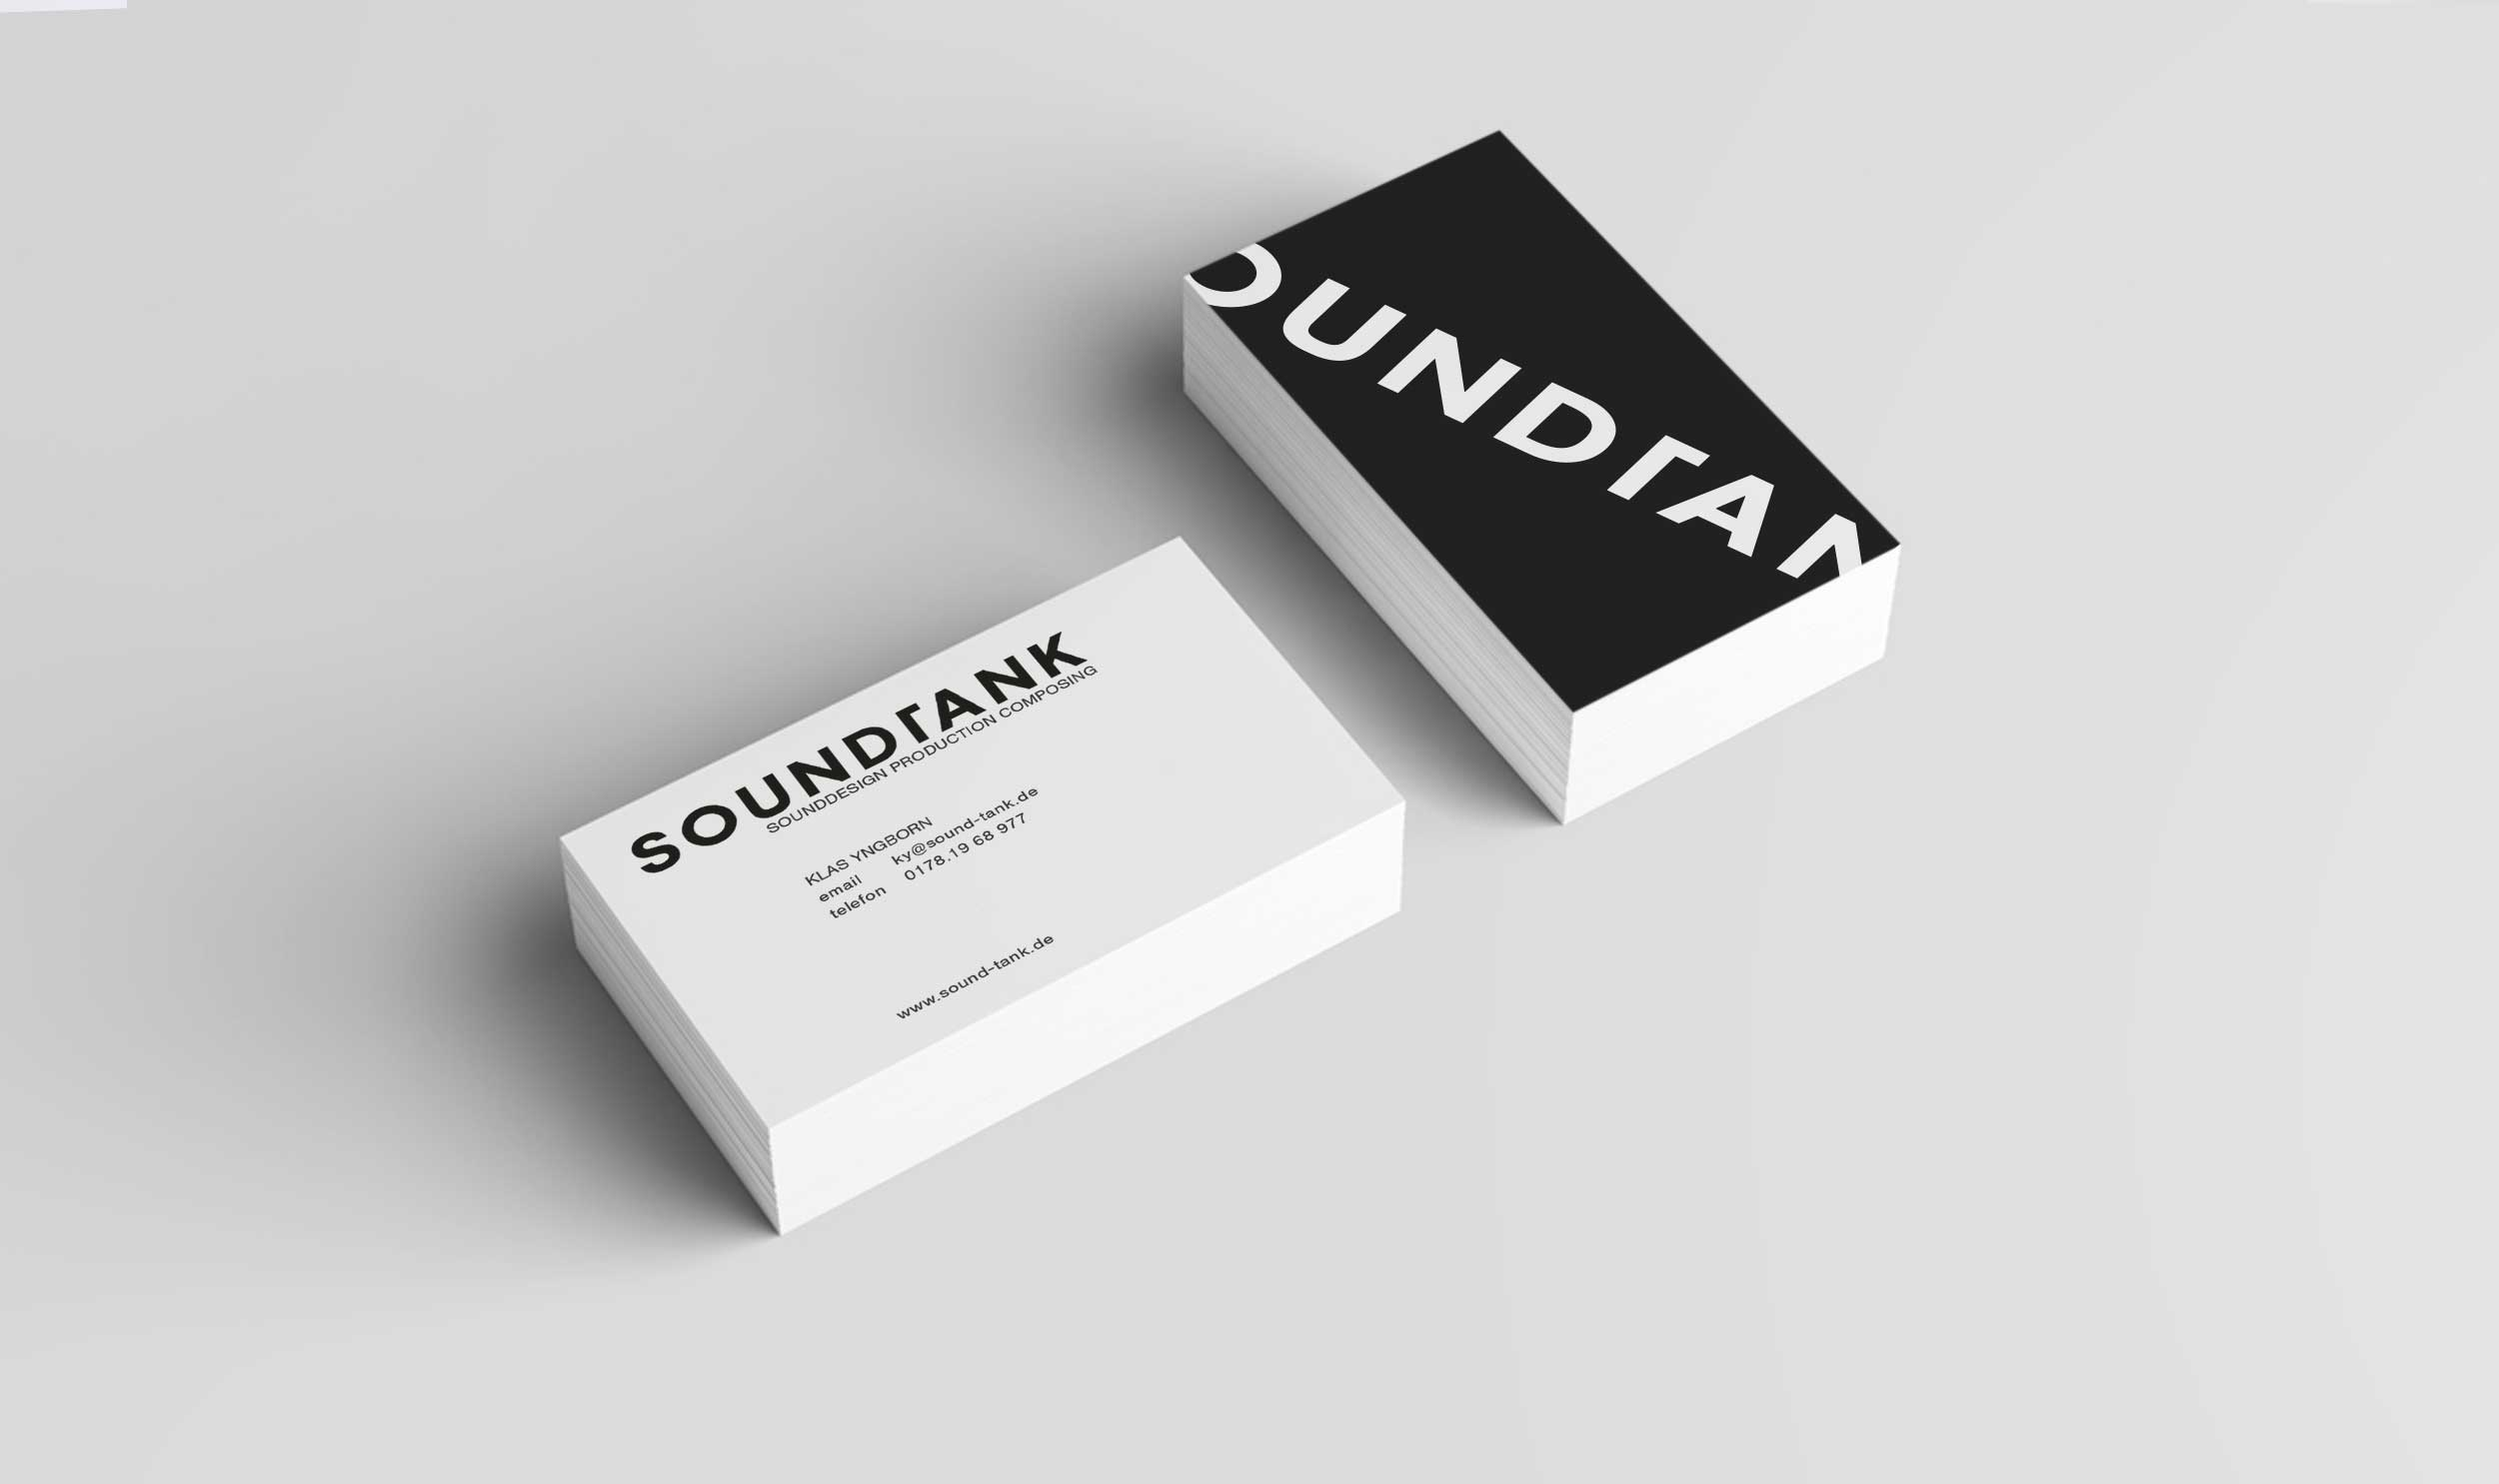 Soundtank_visits